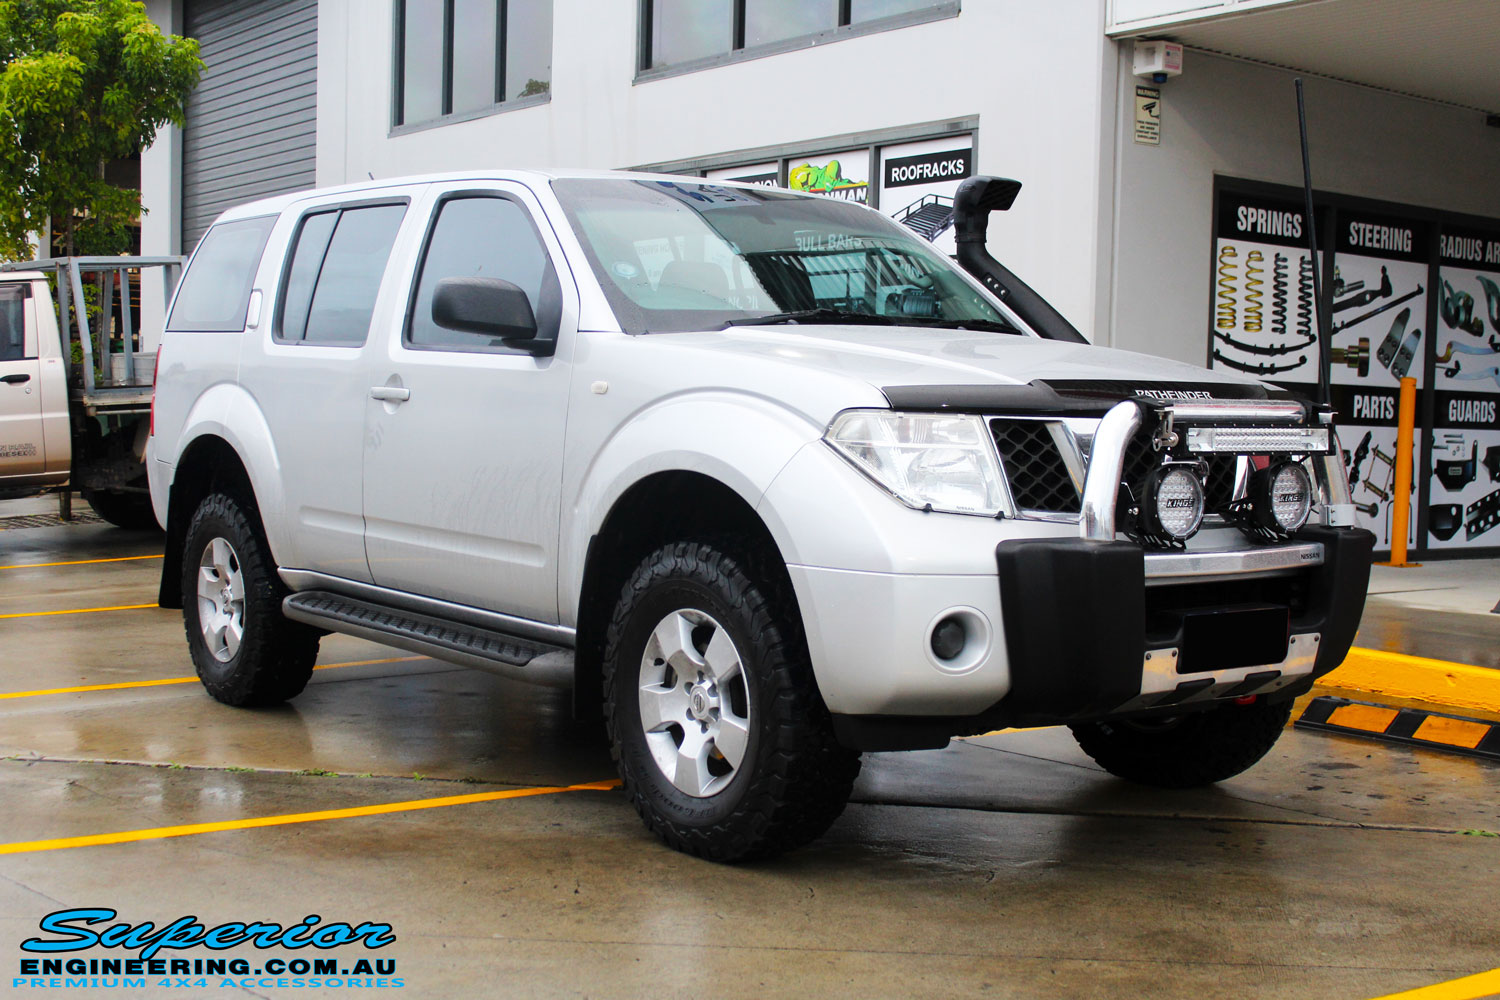 Right front side view of a Silver Nissan R51 Pathfinder Wagon before fitment of a 40mm Lift Kit & Safari Snorkel